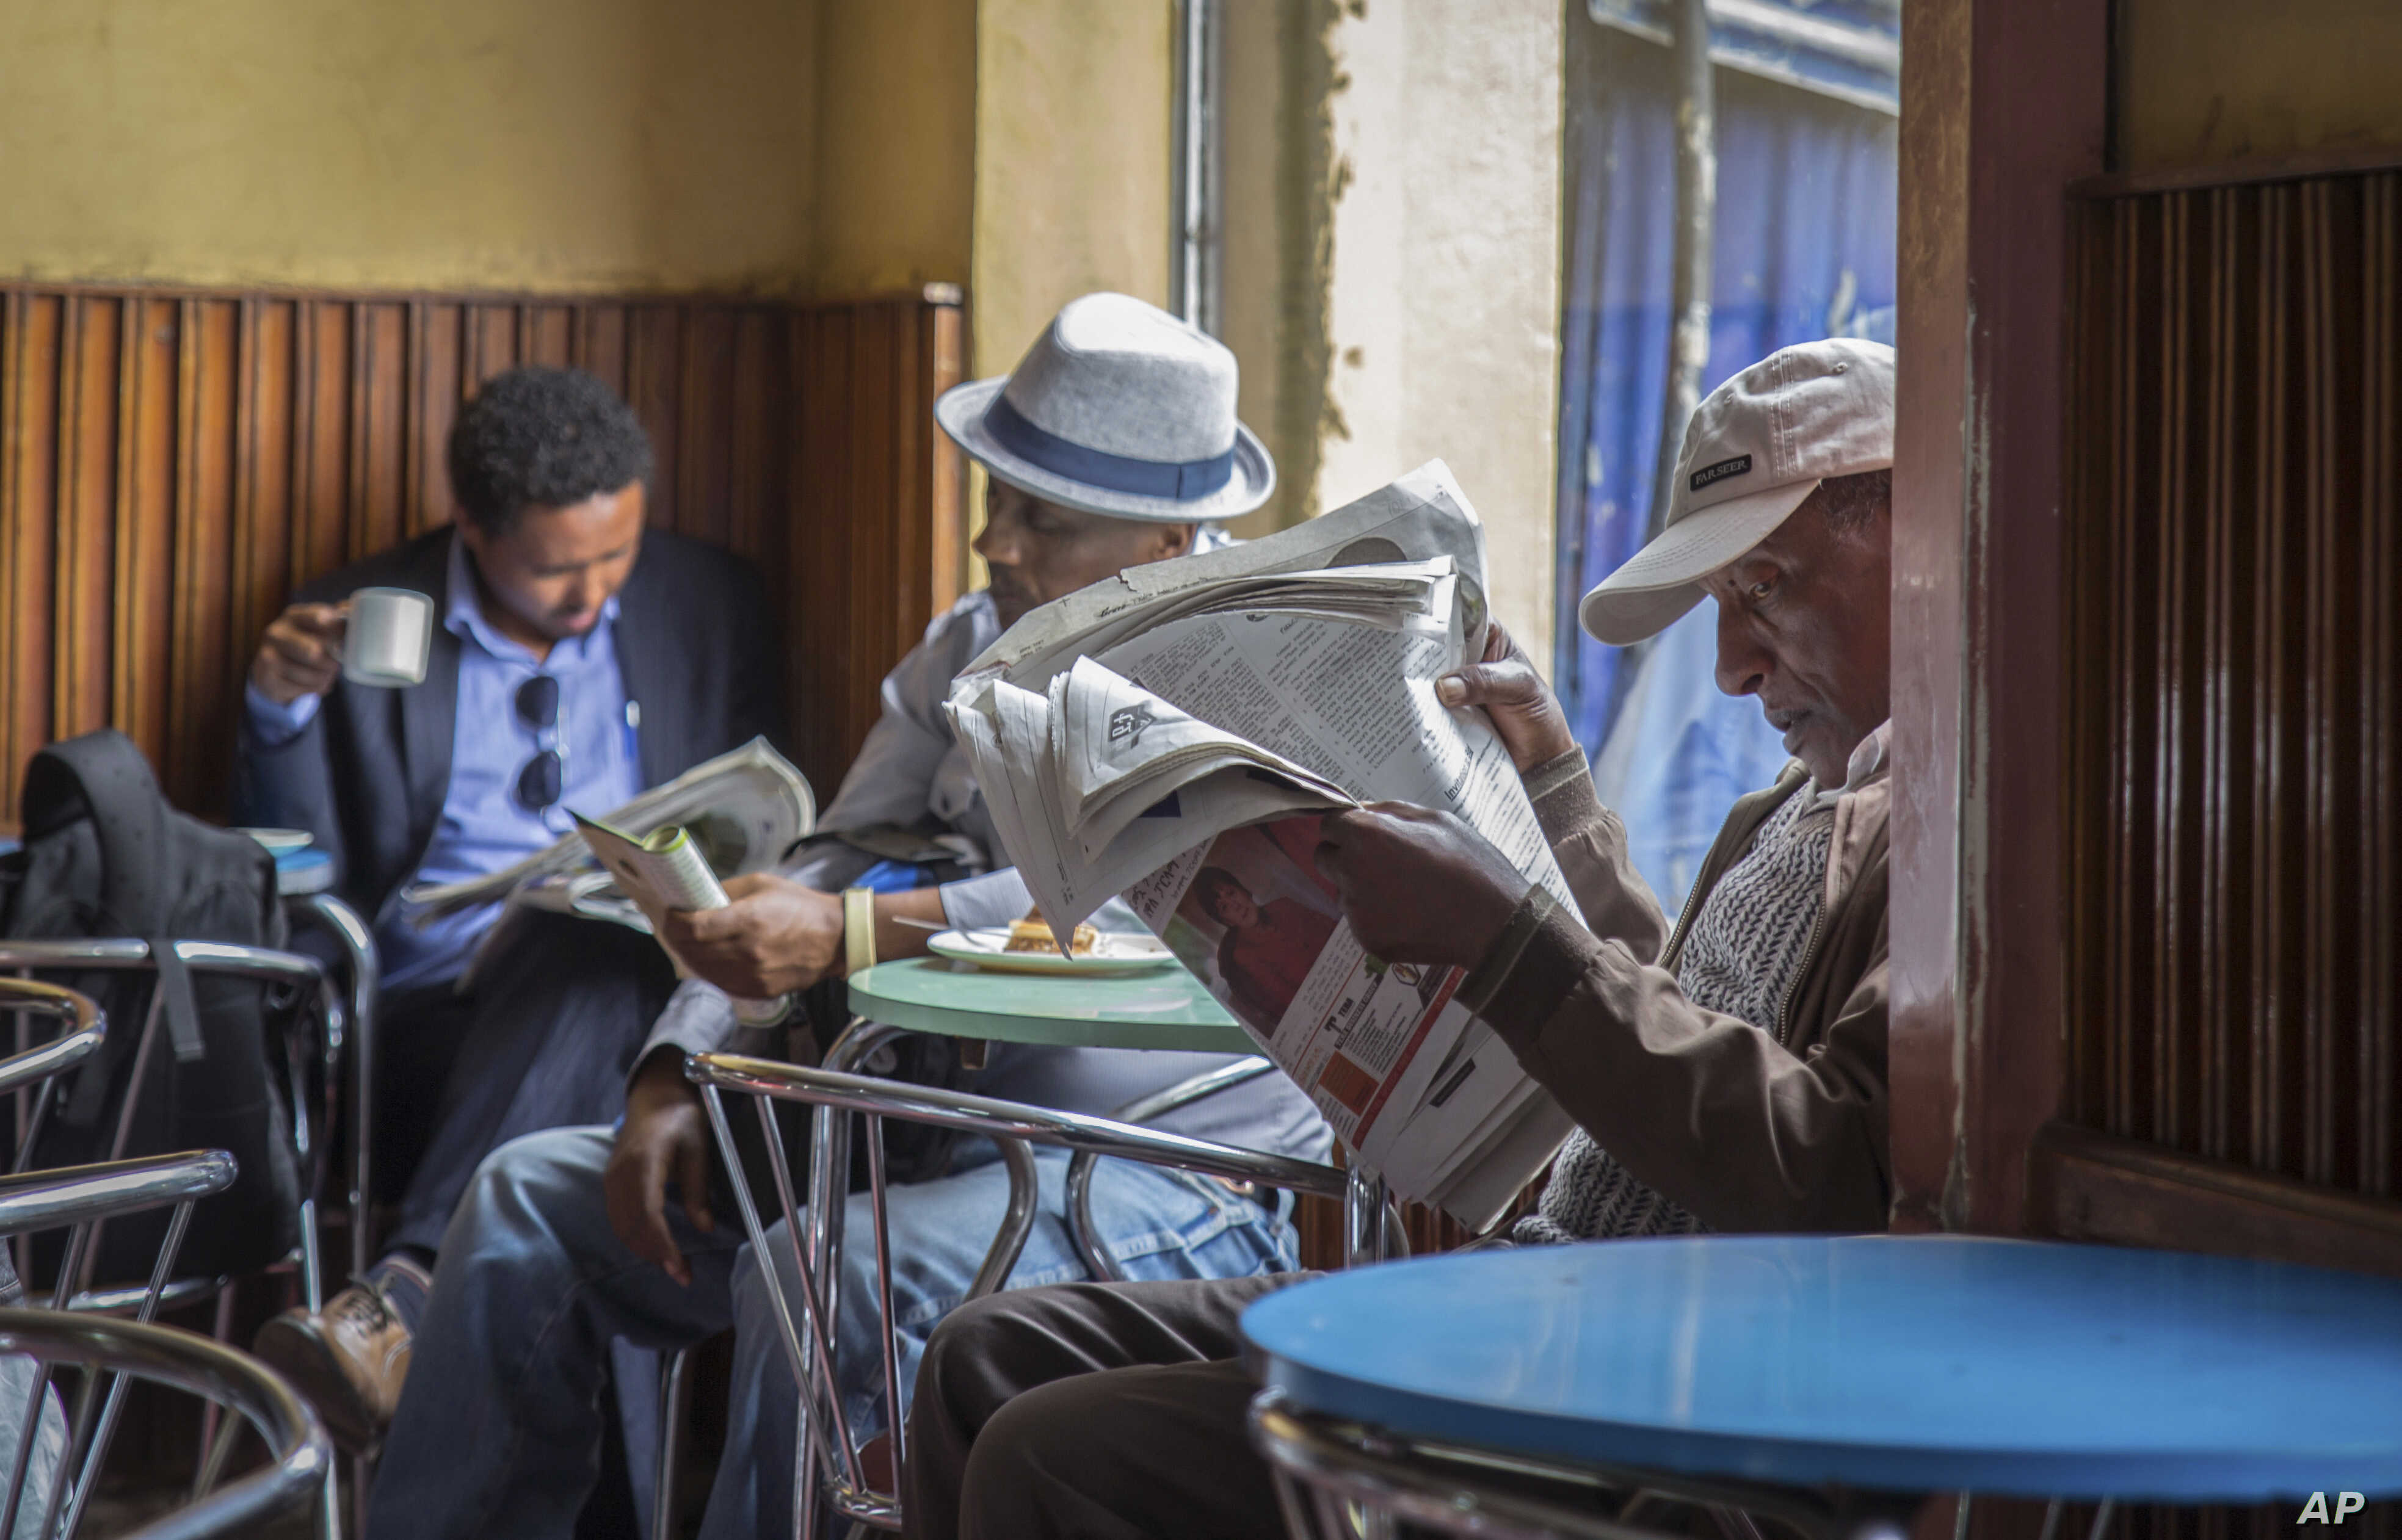 FILE - In this Oct. 10, 2016 file photo, Ethiopian men read newspapers and drink coffee at a cafe during a declared state of emergency in Addis Ababa, Ethiopia. Since 2015 there have been wide-ranging internet shutdowns.